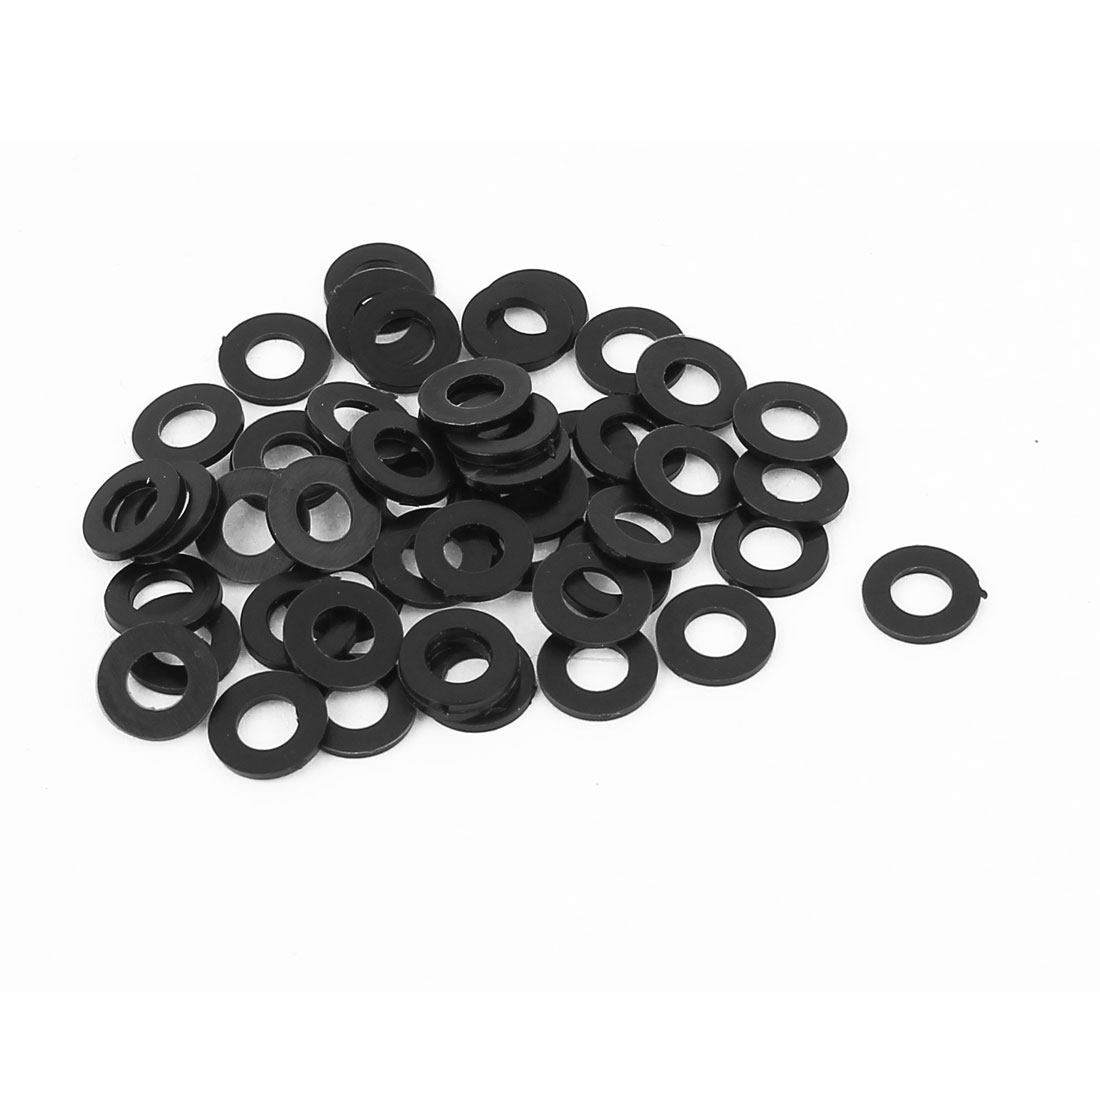 50pcs Round Insulation Nylon Flat Spacer Washer Gasket Ring 5 x 10 x 1mm Black